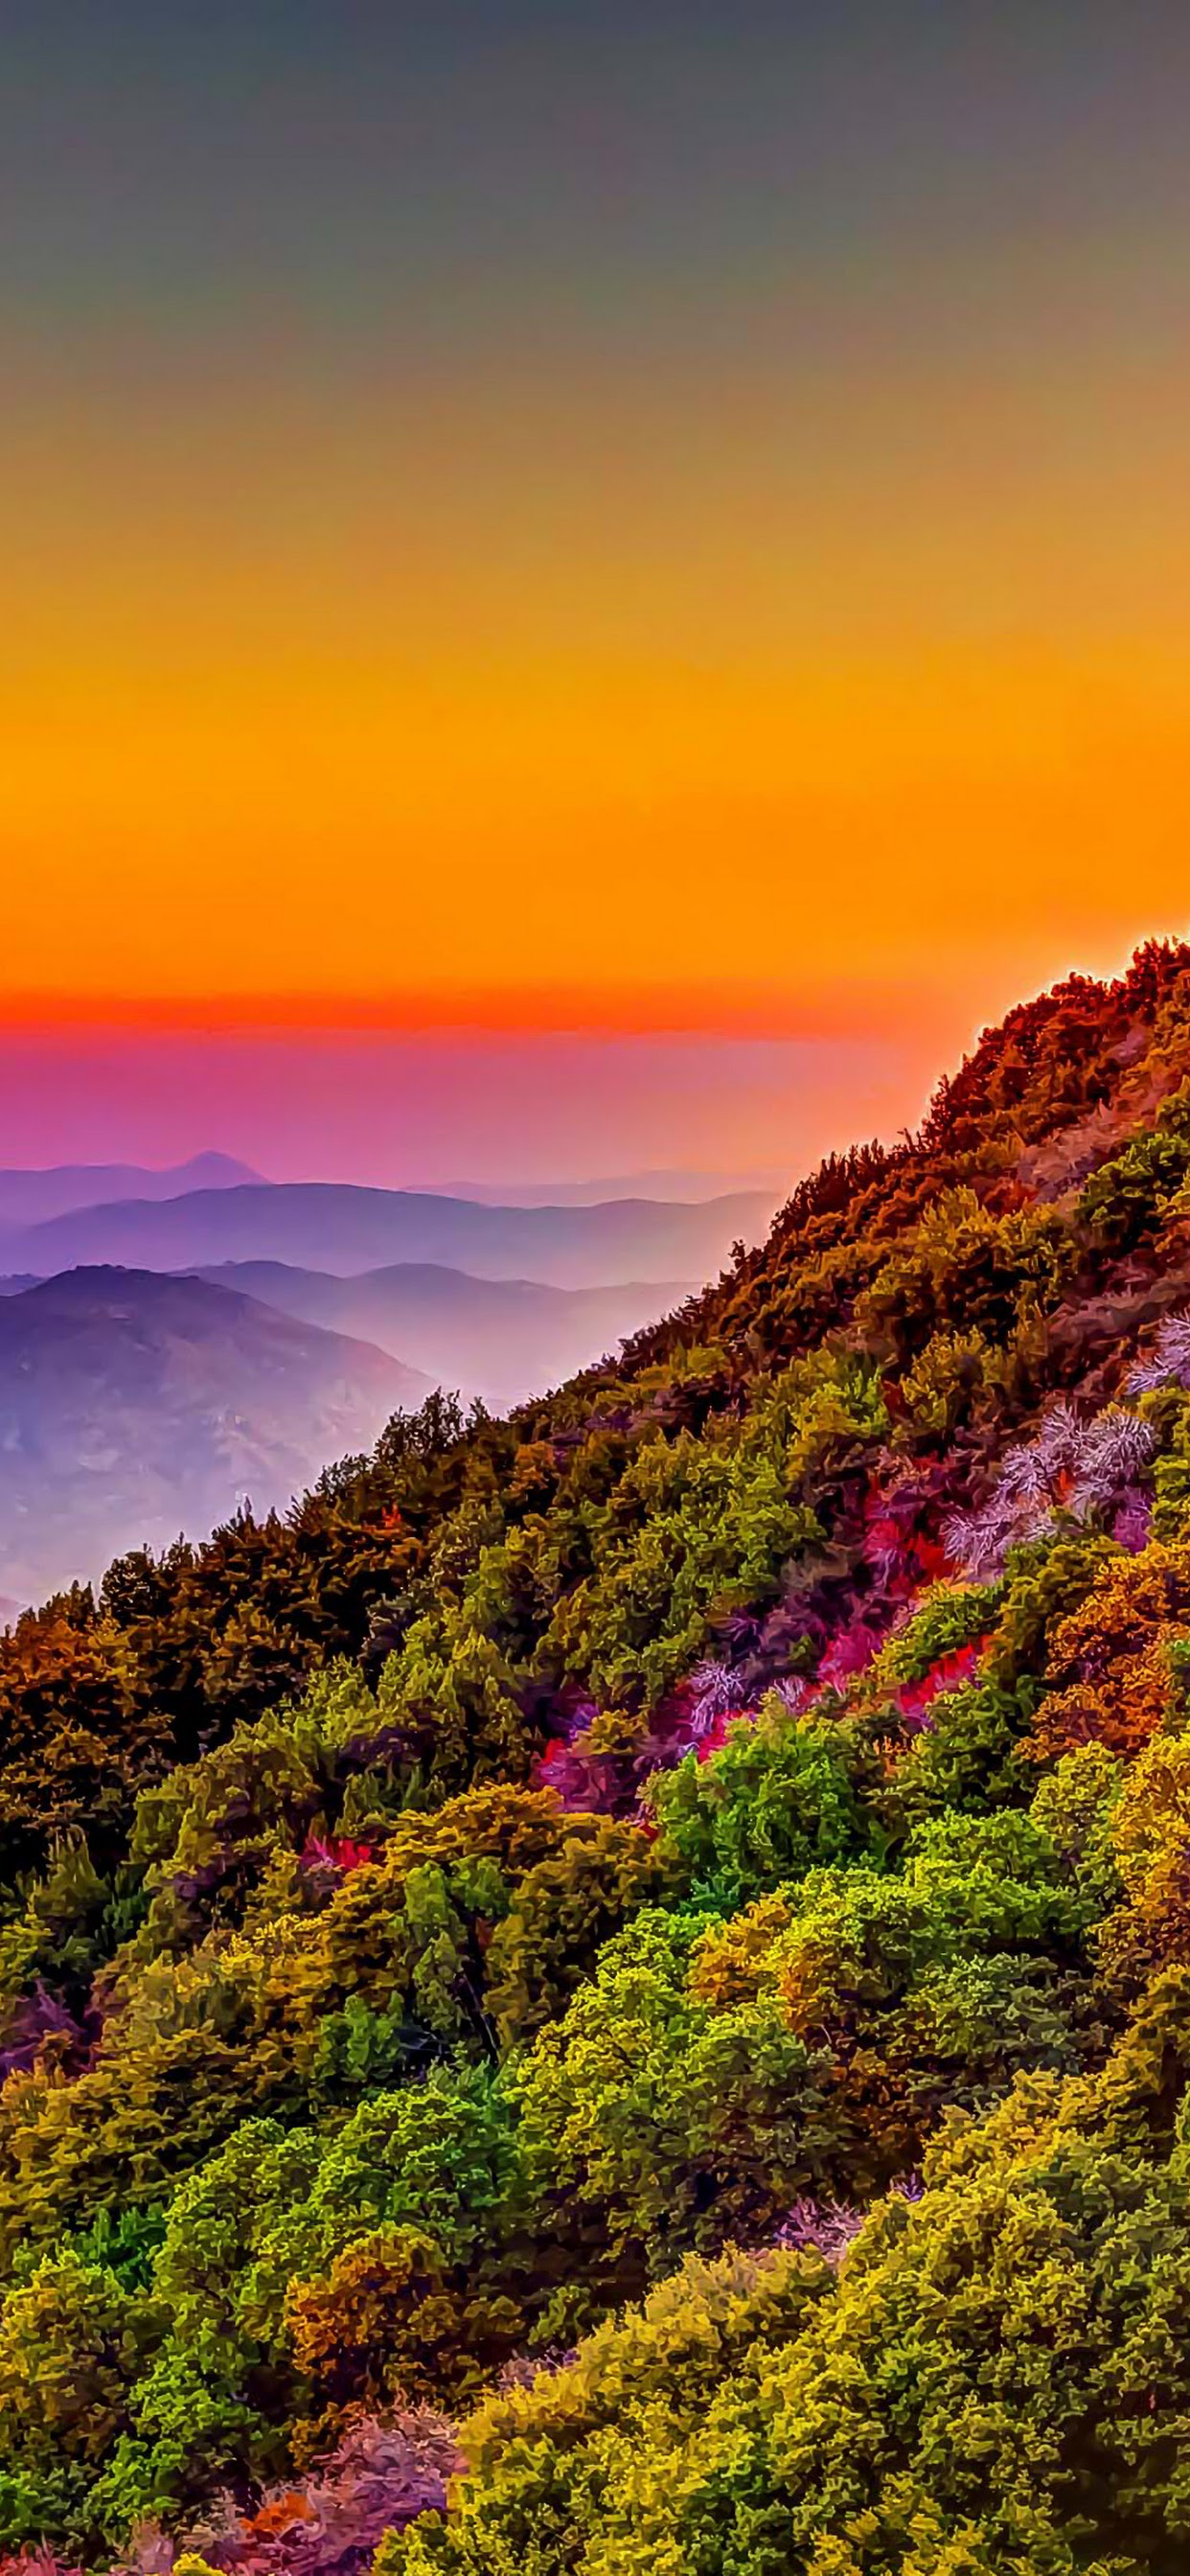 mountain colorful forest nature sunset